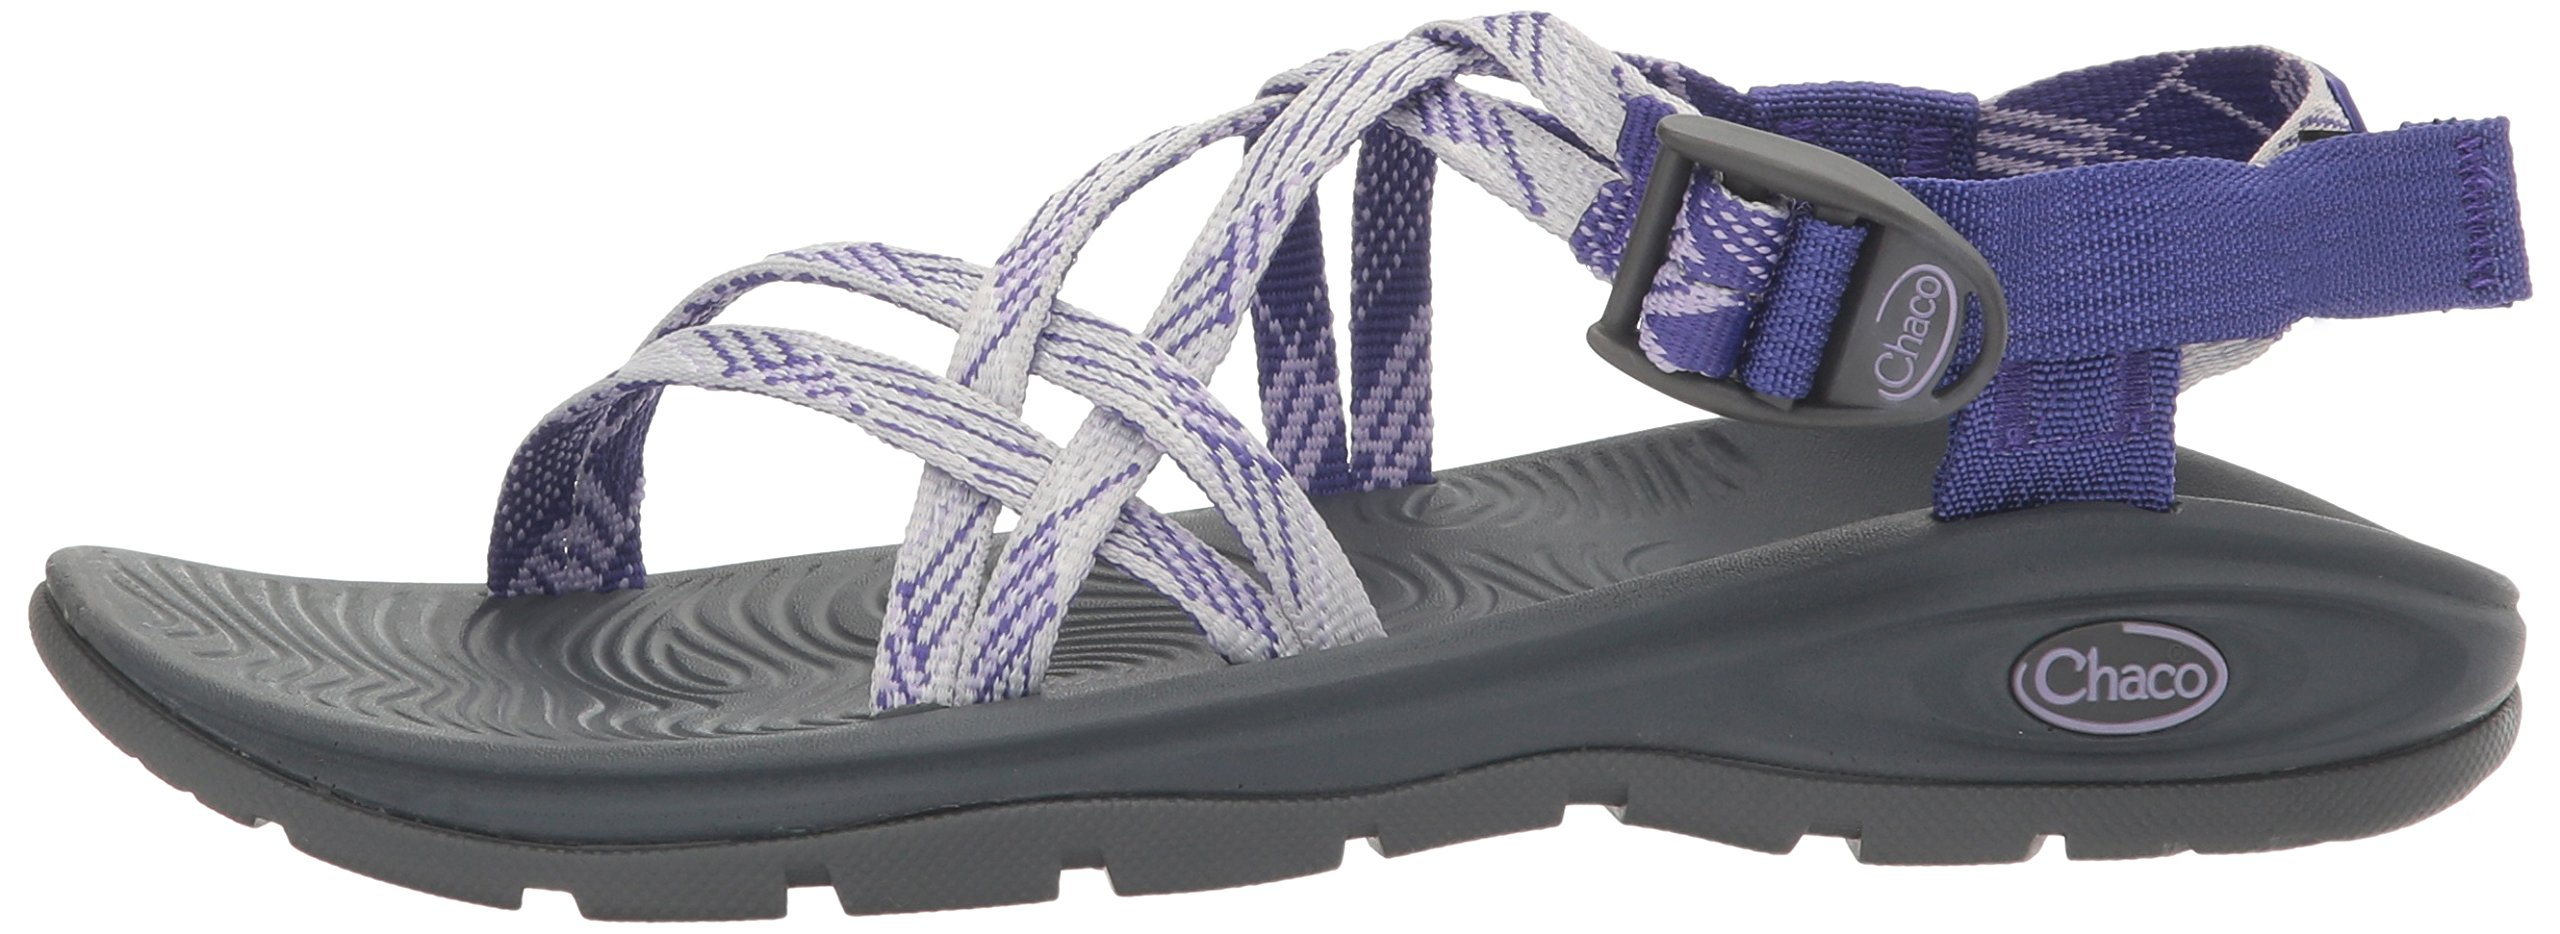 Chaco Women's Zvolv X Athletic Sandal, Lavender Liberty, 6 M US by Chaco (Image #5)